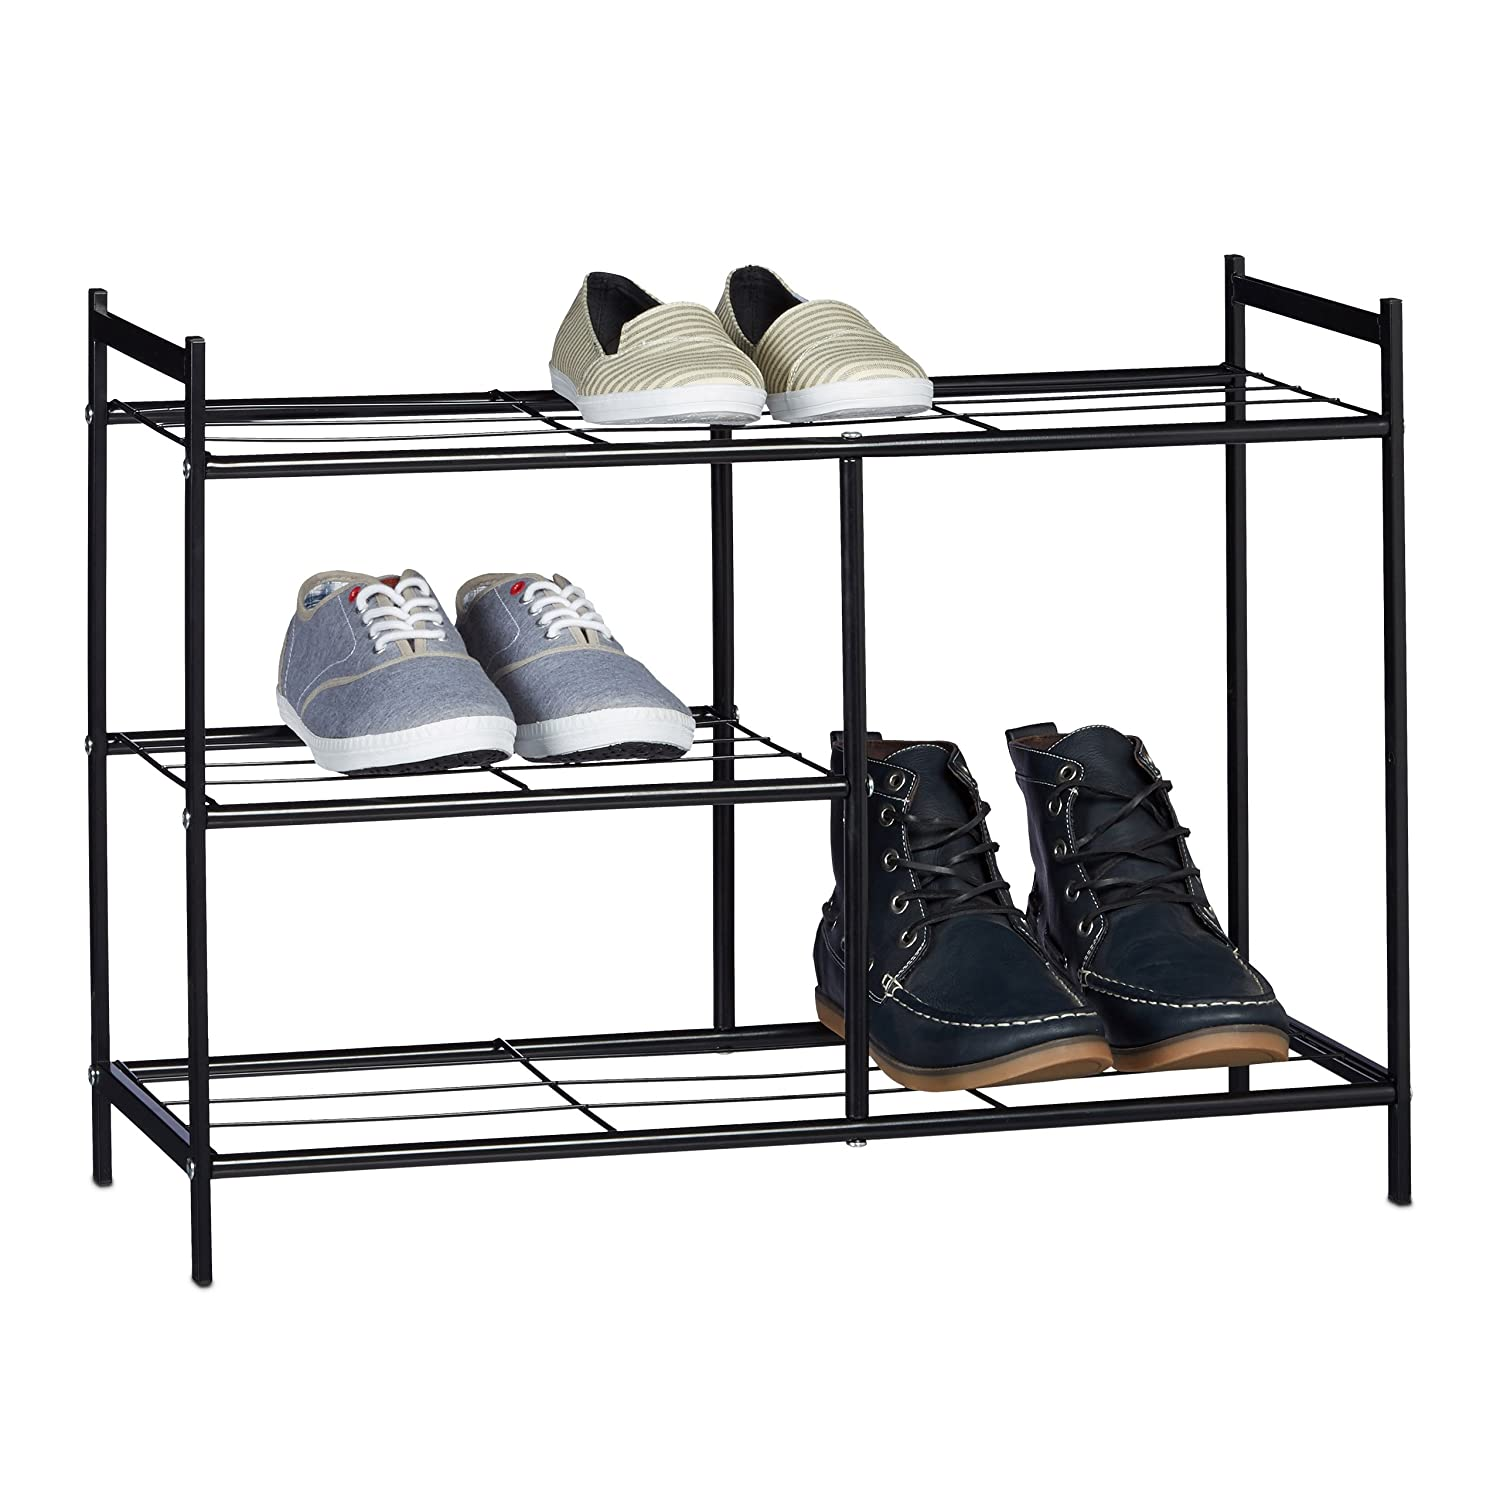 relaxdays shoe rack sandra with 3 shelves metal shoe storage with boot shelf size 505 x 70 x 26 cm for 8 pairs of shoes with handles black